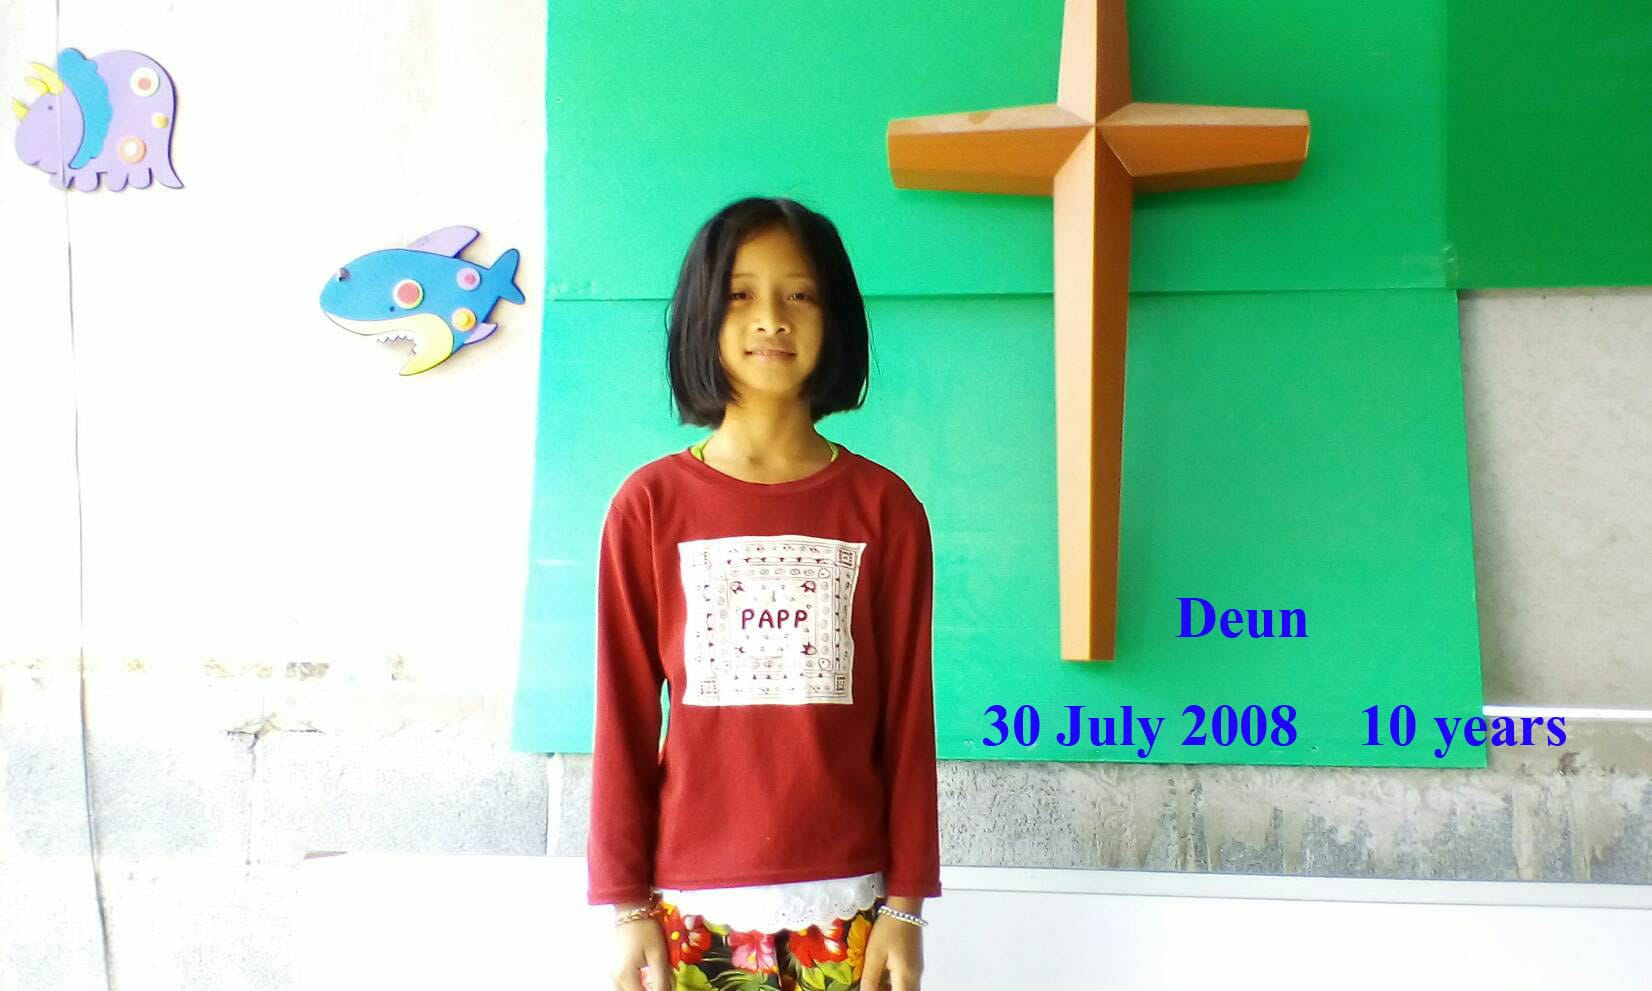 Deun (10 years old, girl)